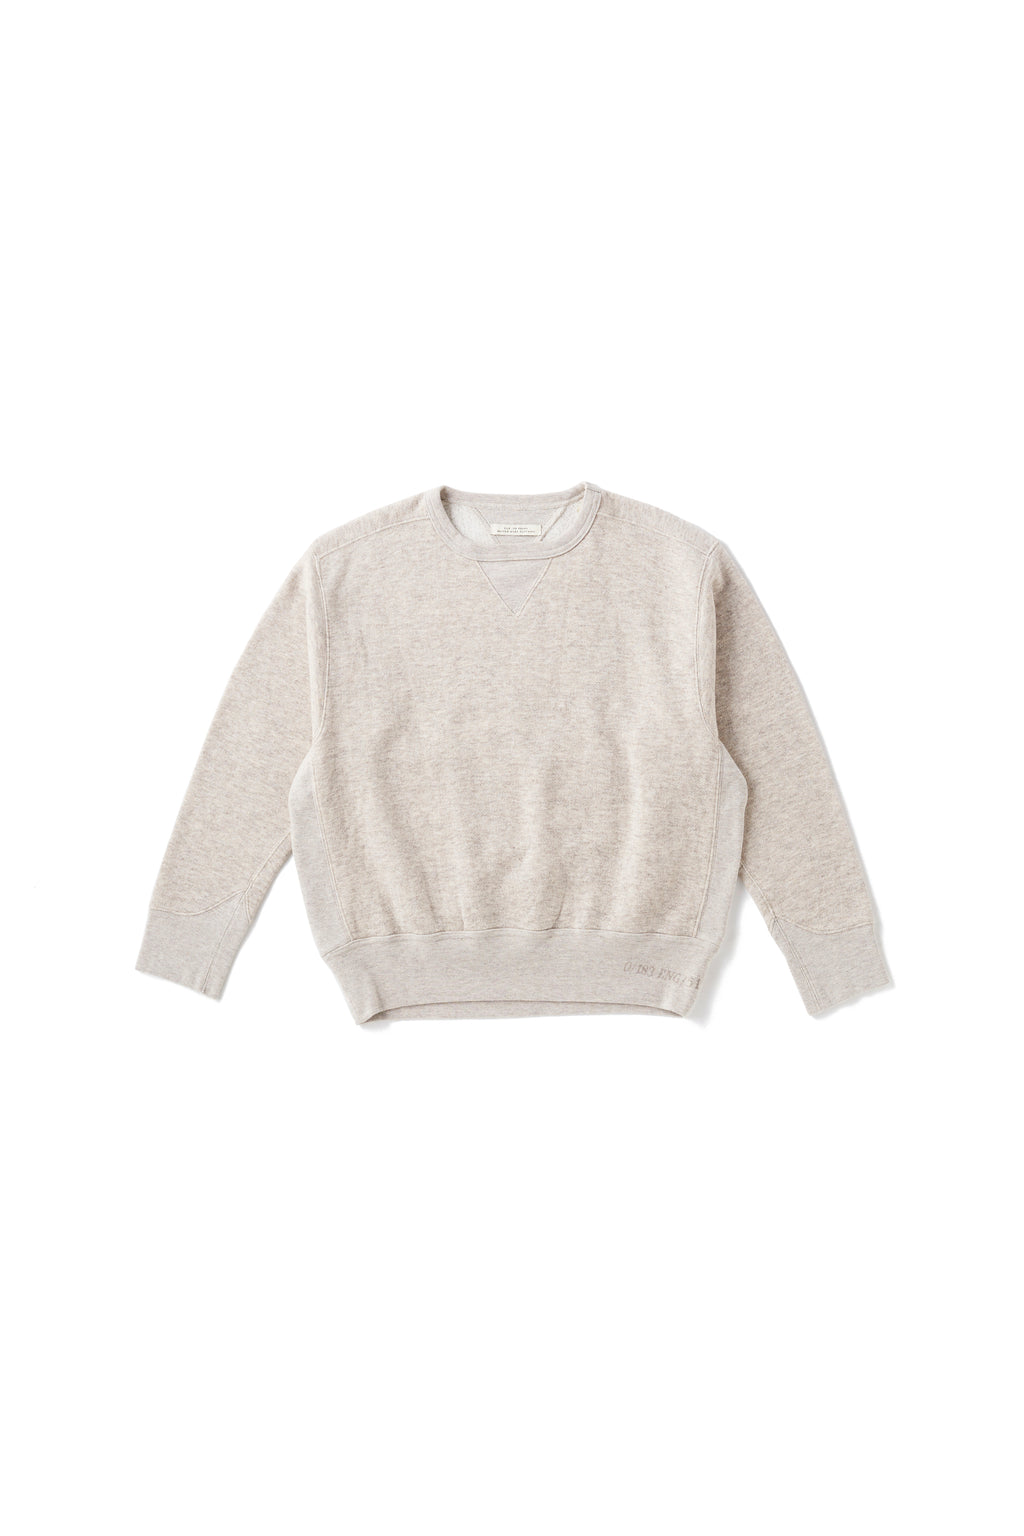 YAK COTTON SWEAT CREW-NECK - 202OJ-CT02